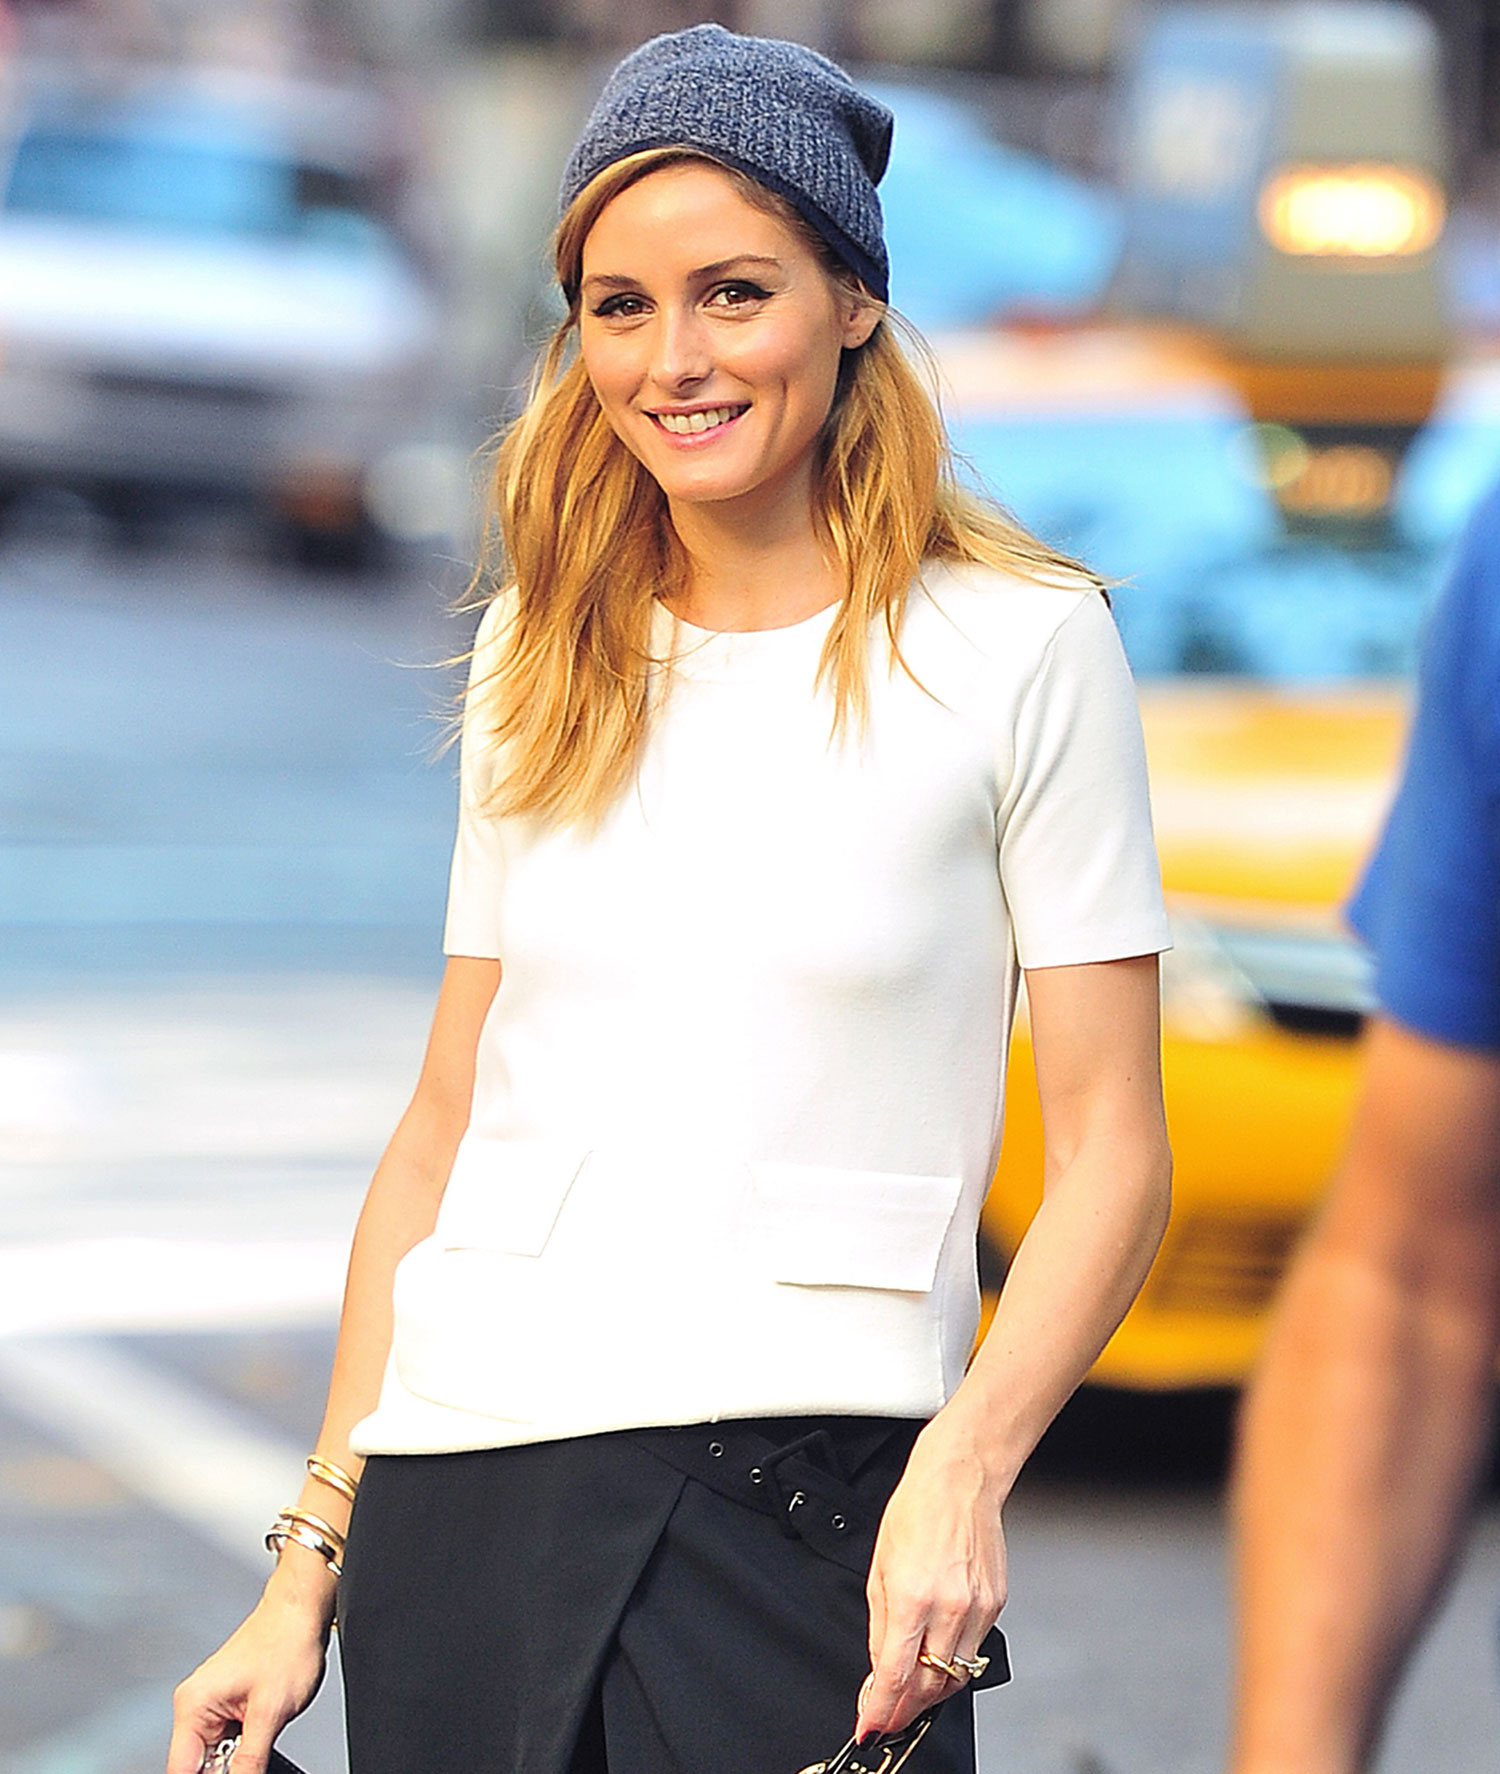 Olivia Palermo is all smiles as she hangs out in SoHo, NYC